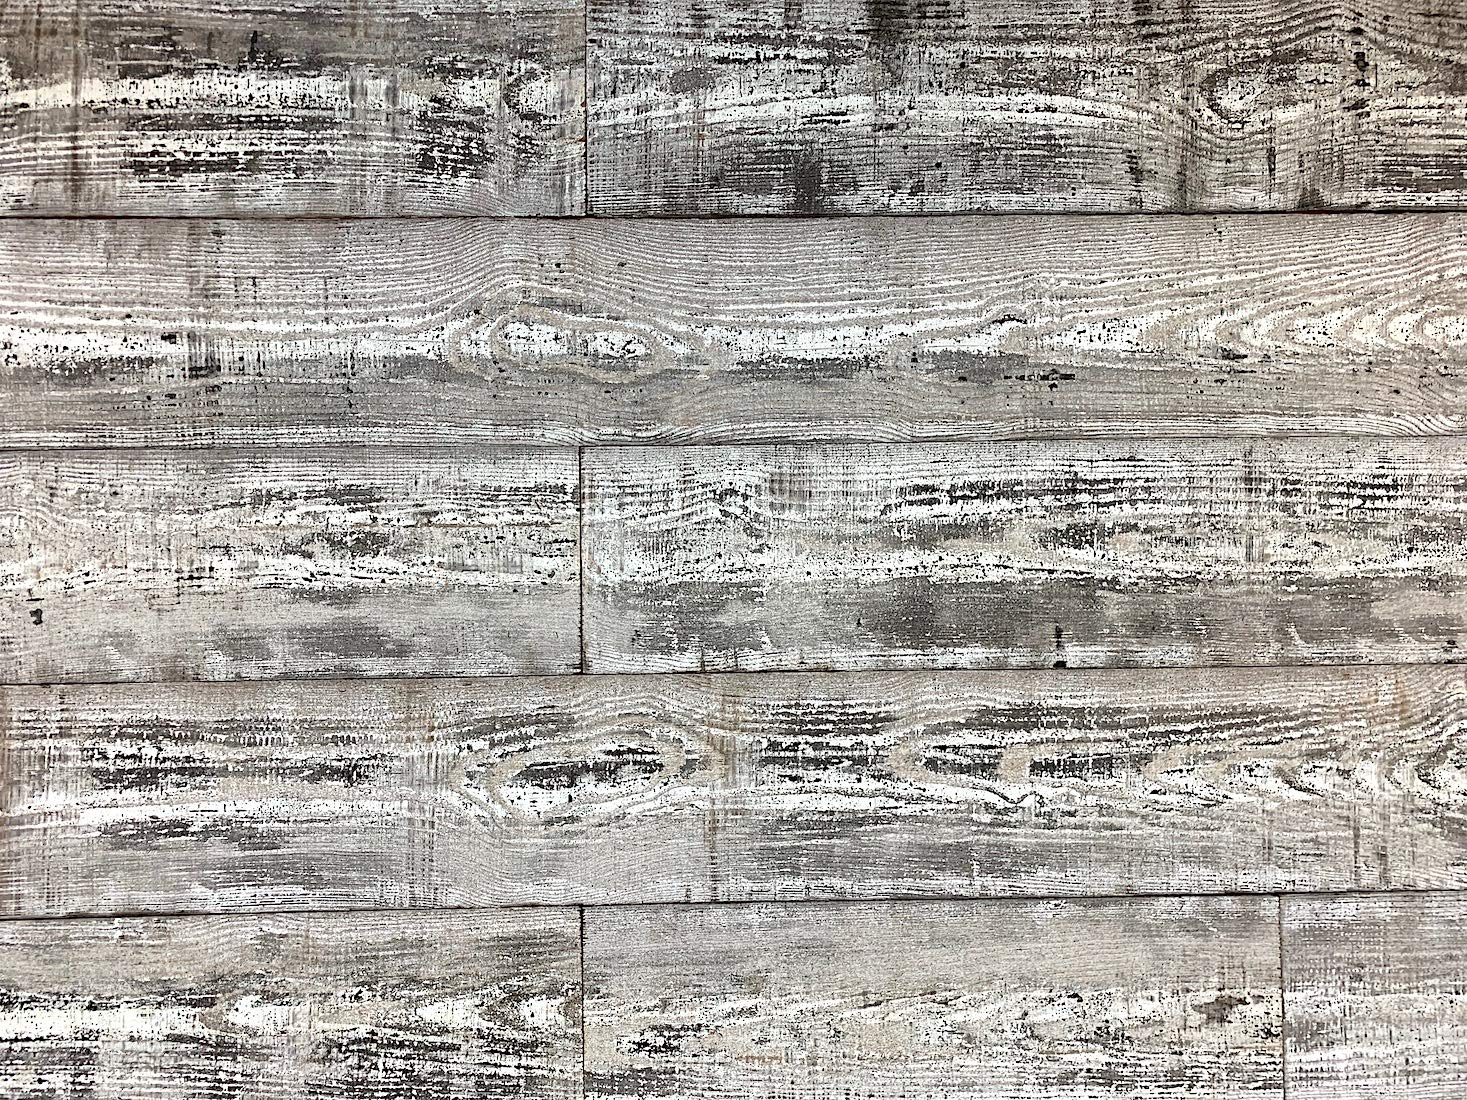 Easy Planking E-110 Thermally-Modified Barn Wood Wall Planks 48 in. (10 sq. ft.), Black/White, 6 Piece by Easy Planking